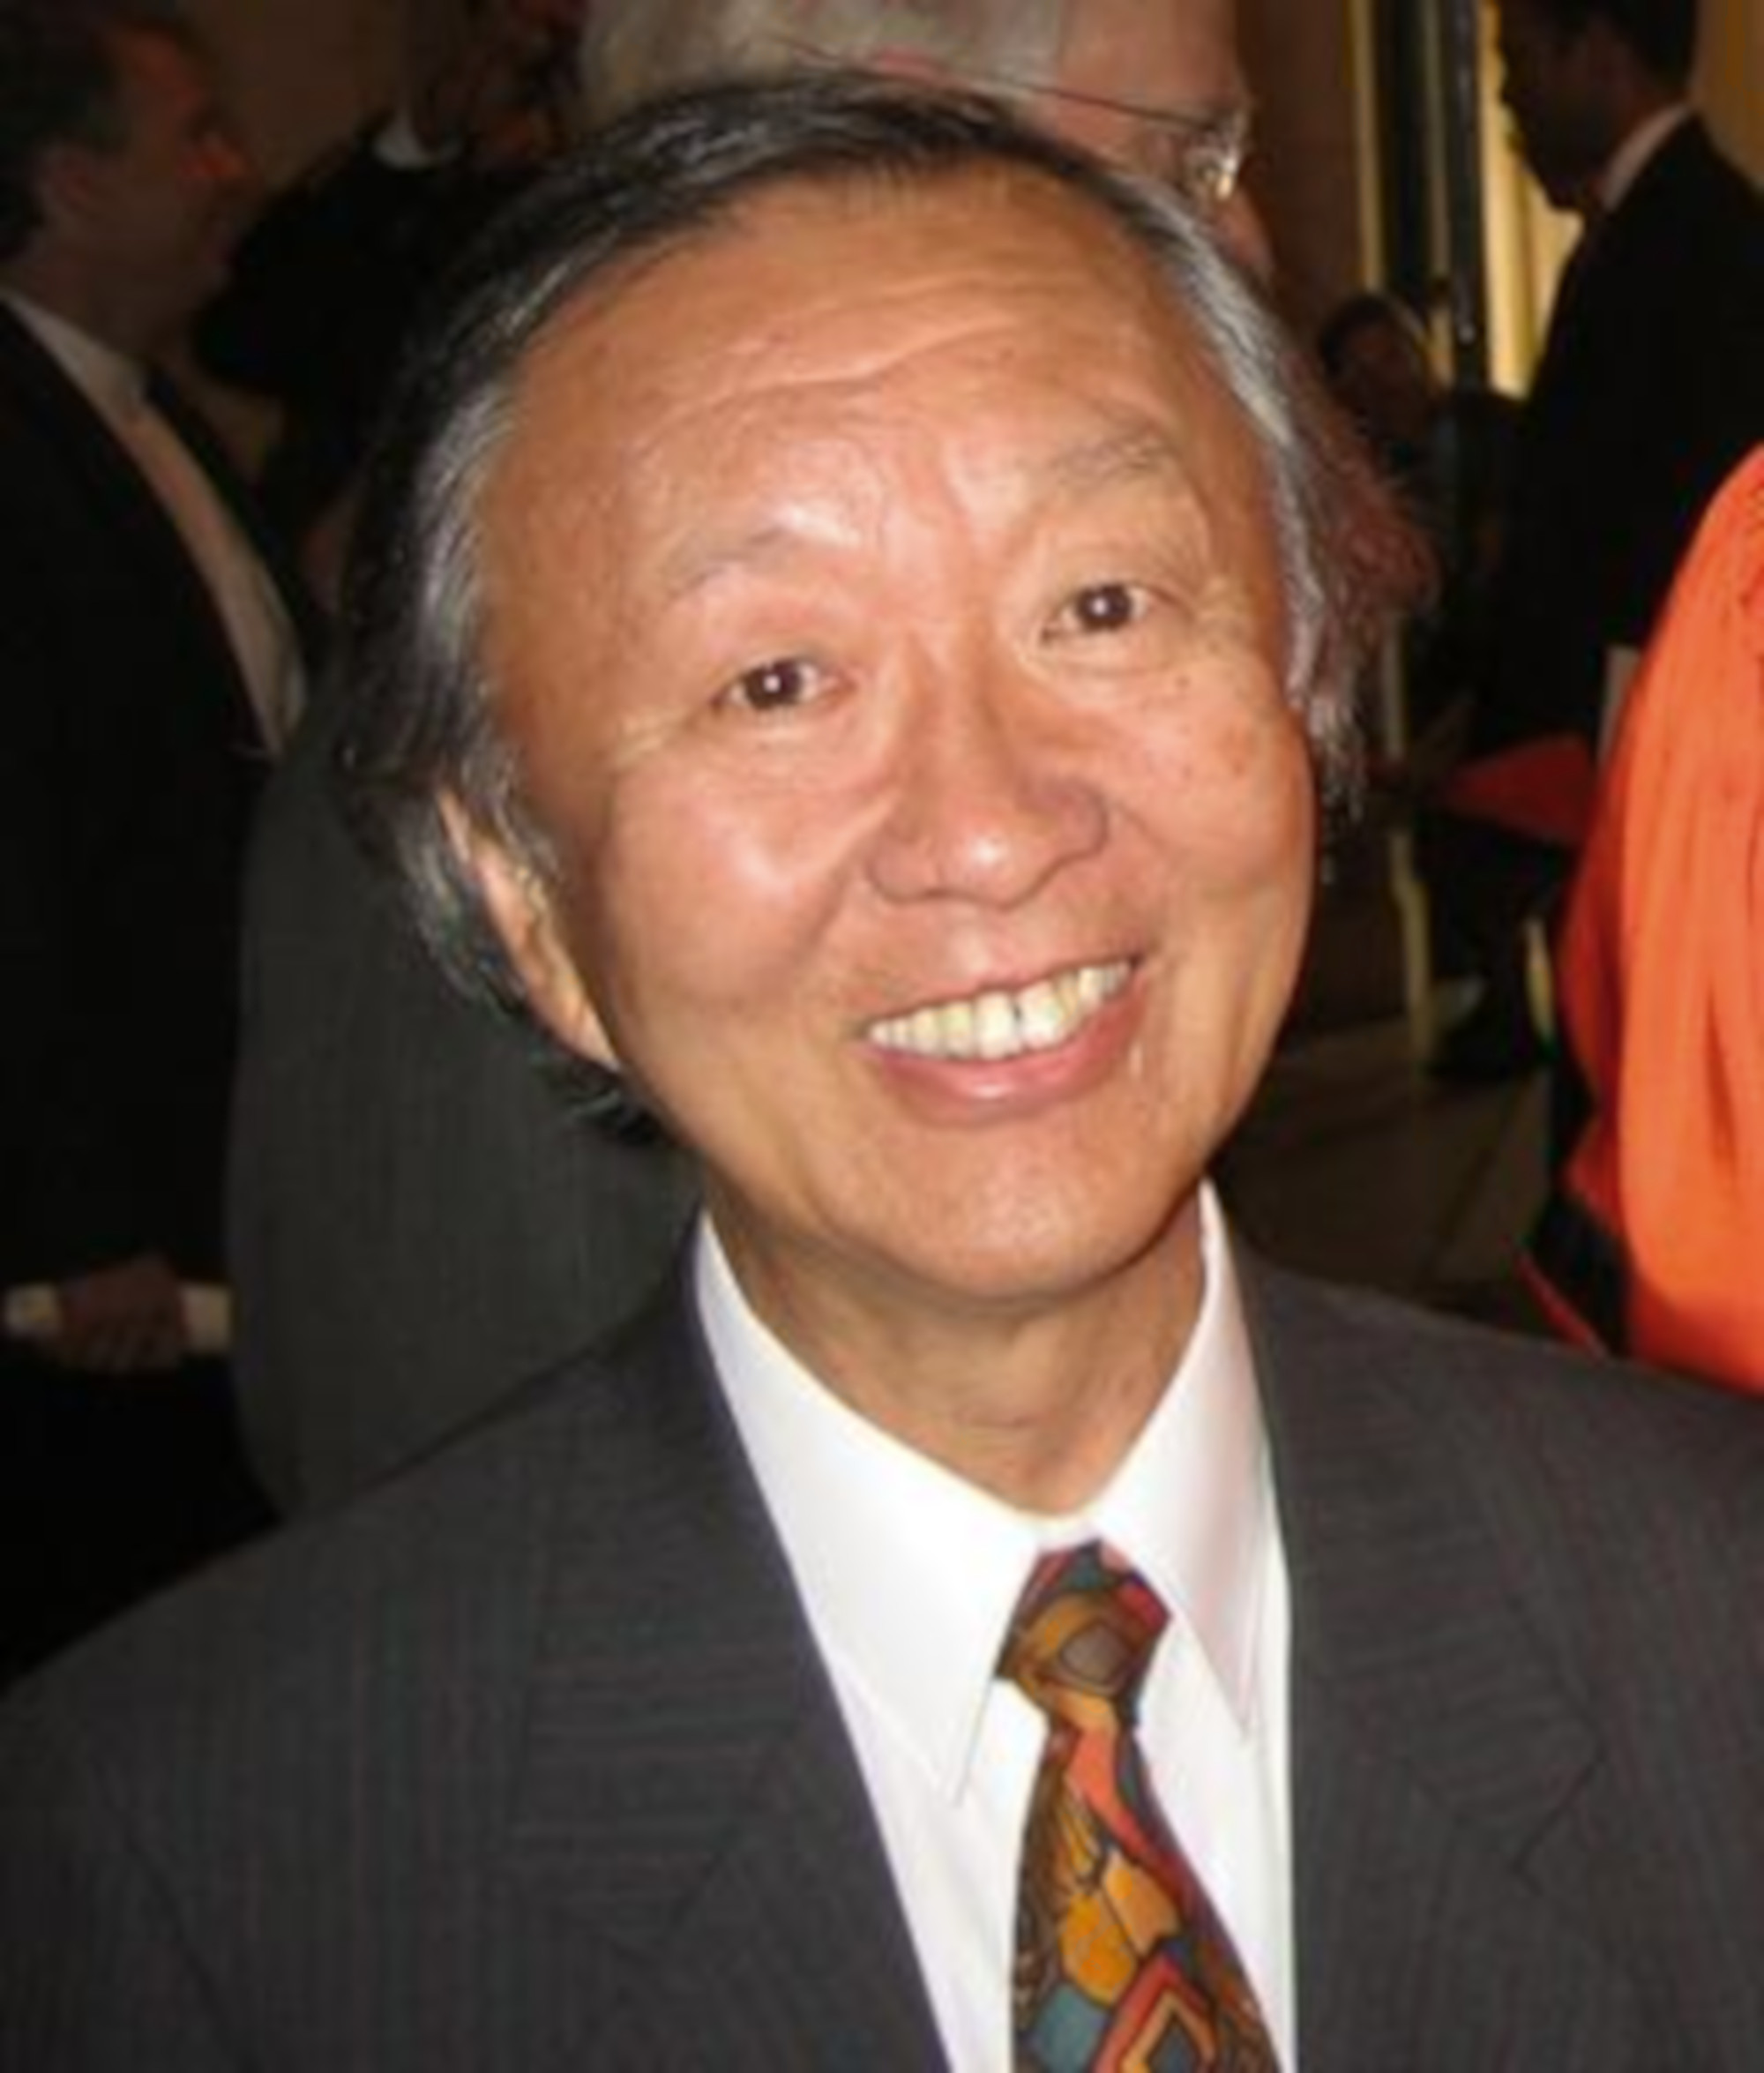 Kao, widely regarded as the Father of Fiber Optic Communications, was awarded half of the 2009 Nobel Prize in Physics for groundbreaking achievements concerning the transmission of light in fibers for optical communication.